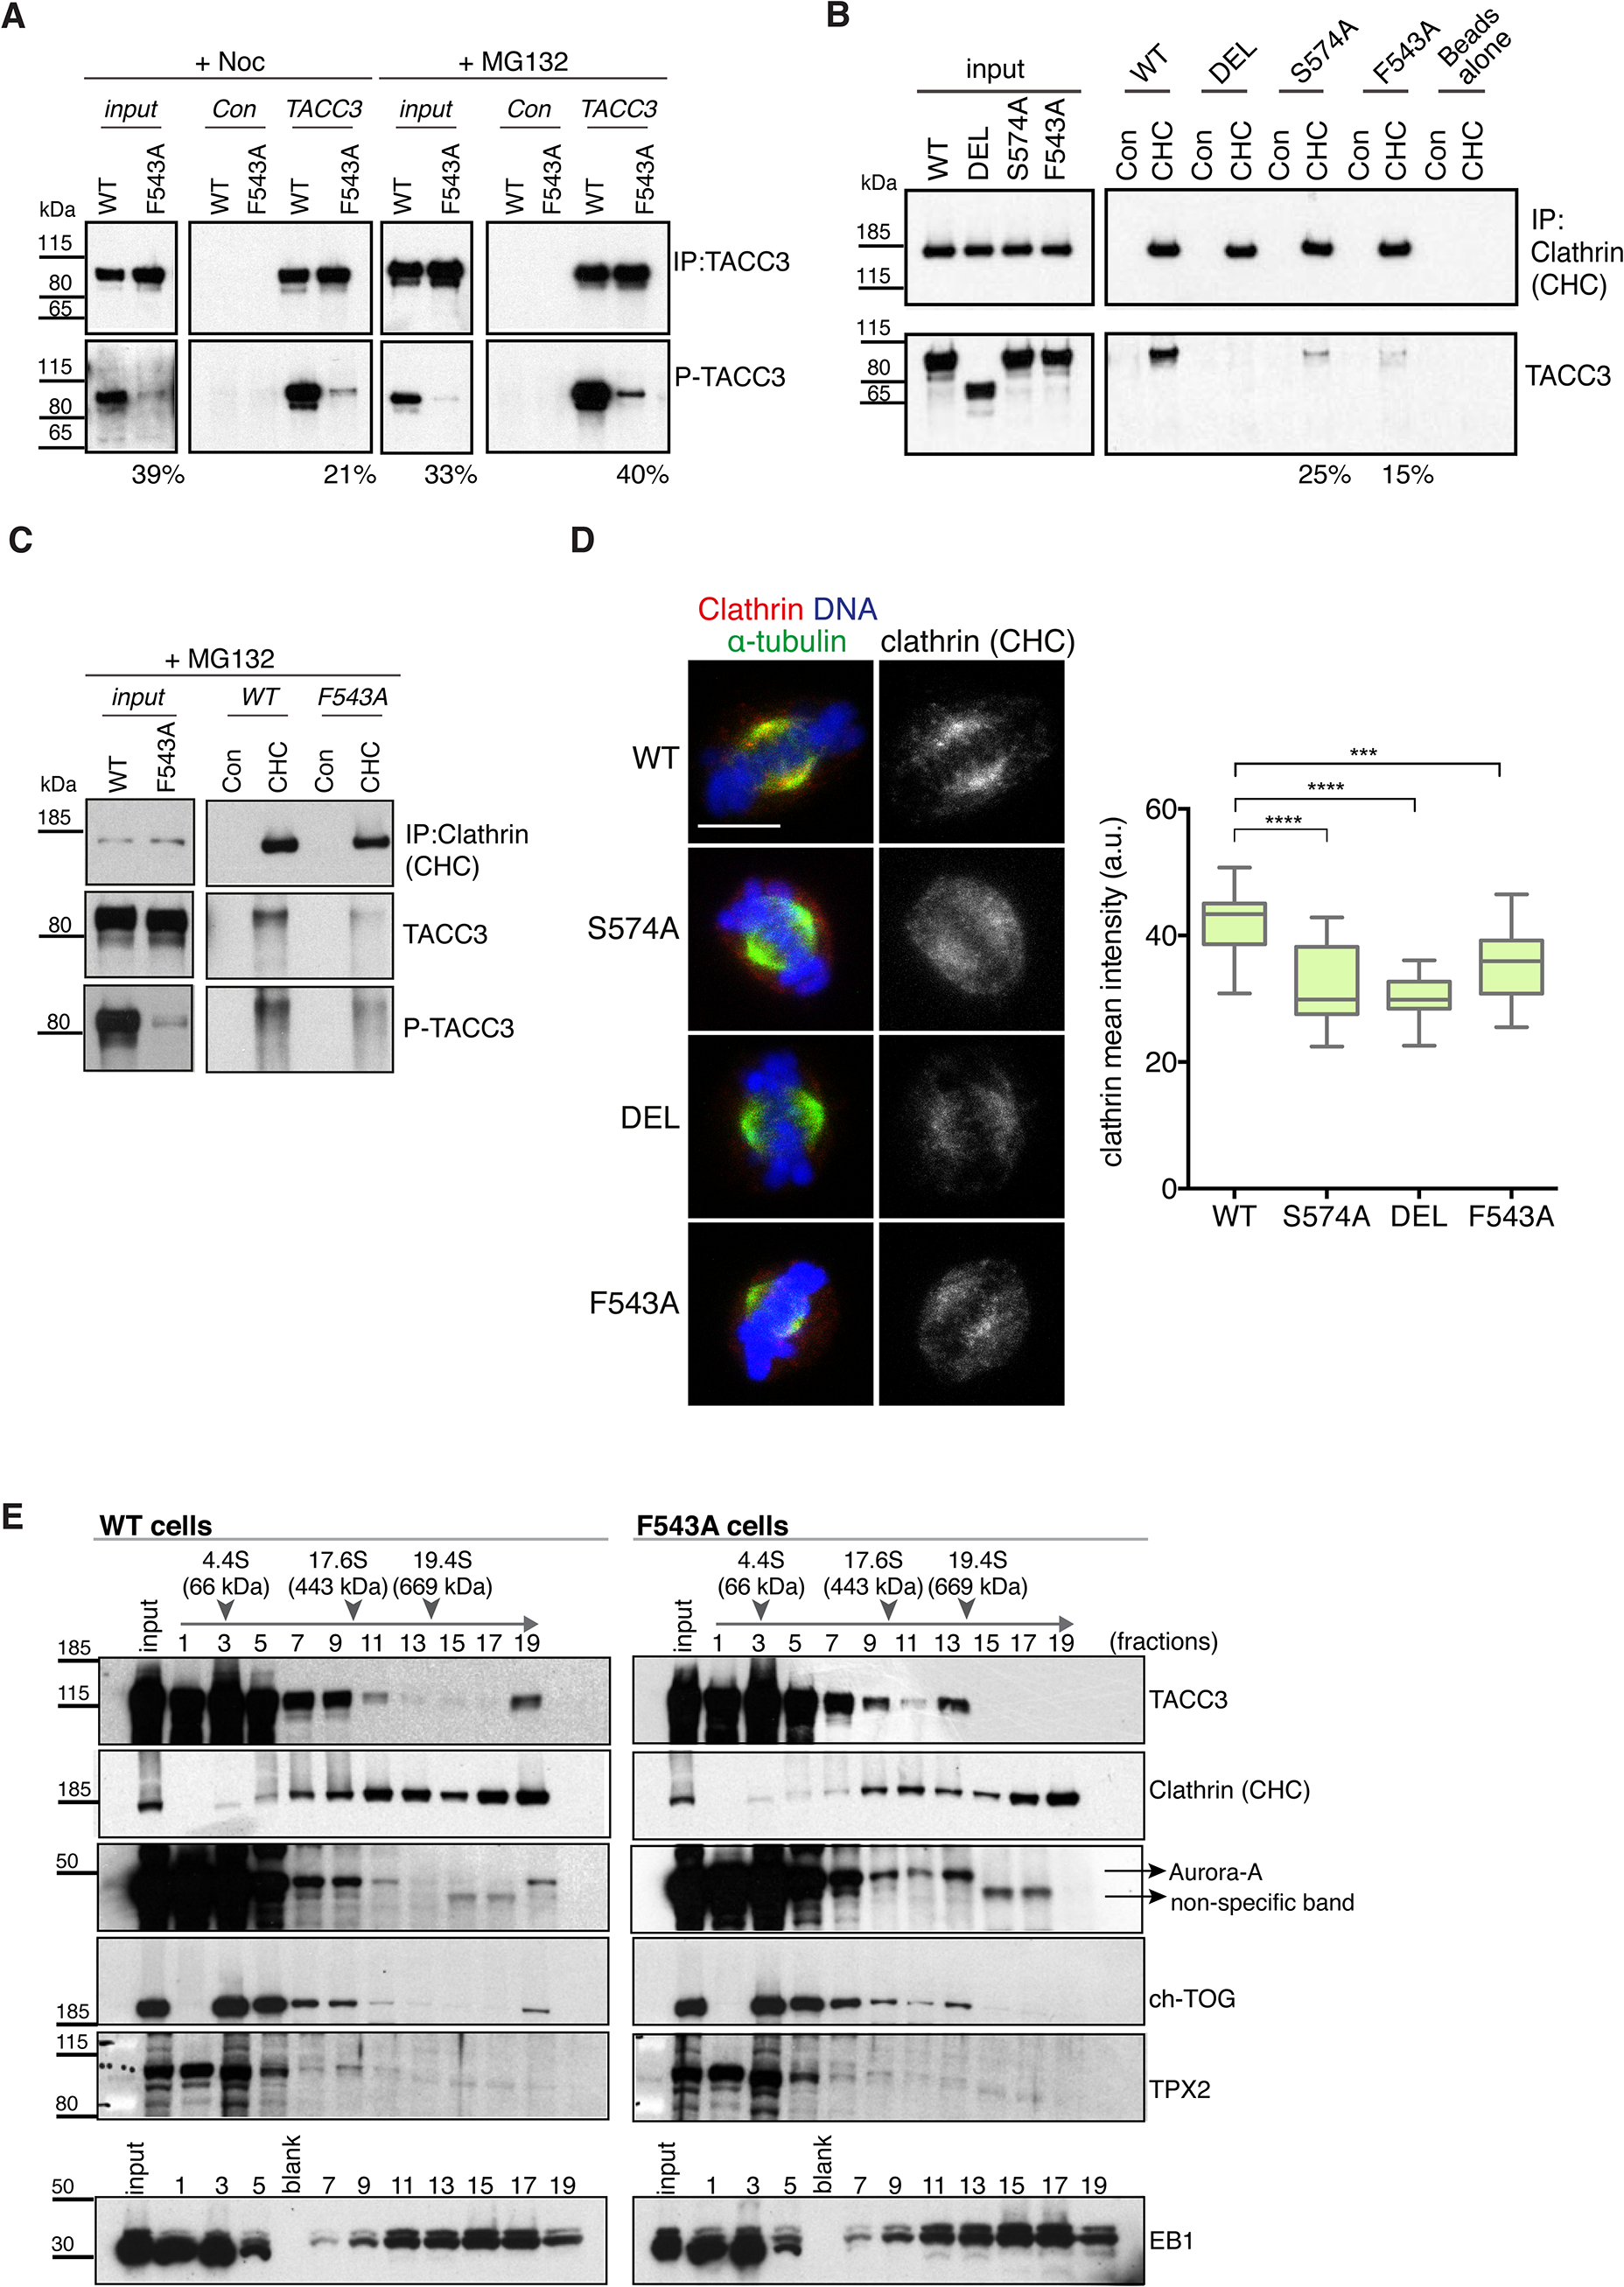 The F543A mutation impairs phosphorylation of TACC3 and its interaction with clathrin.